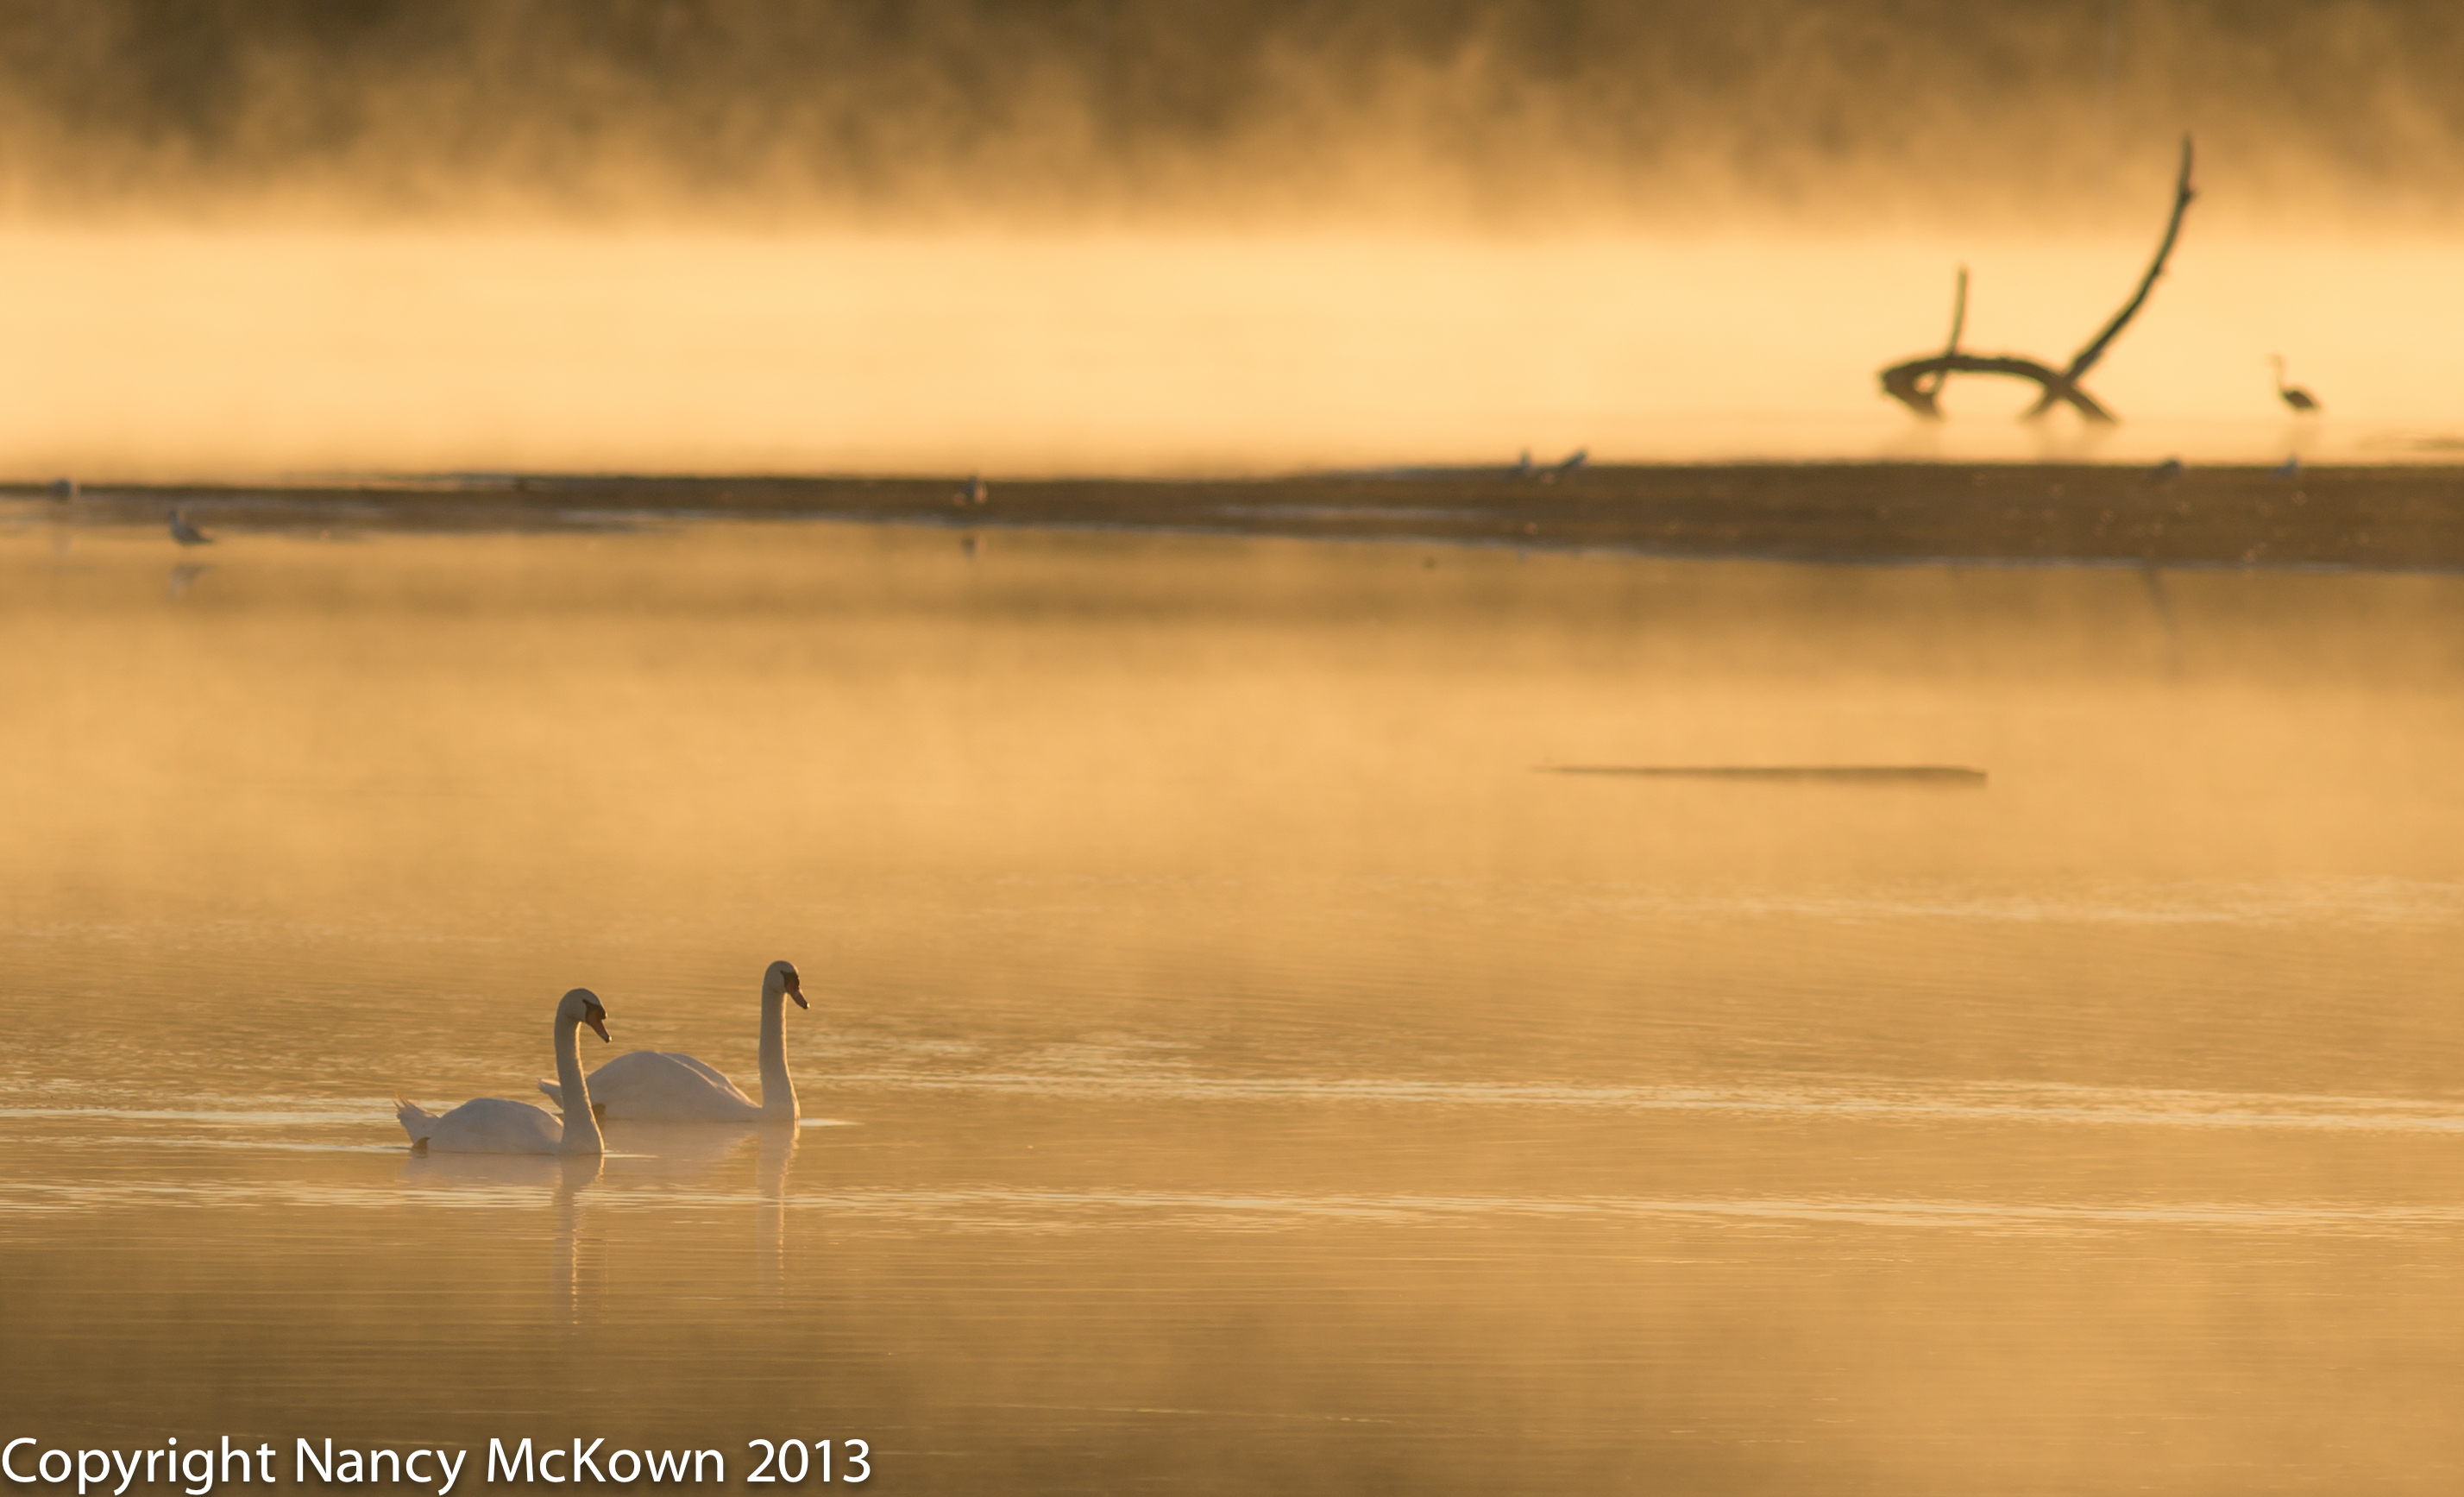 Photograph of Swans on Lake during Golden Hour